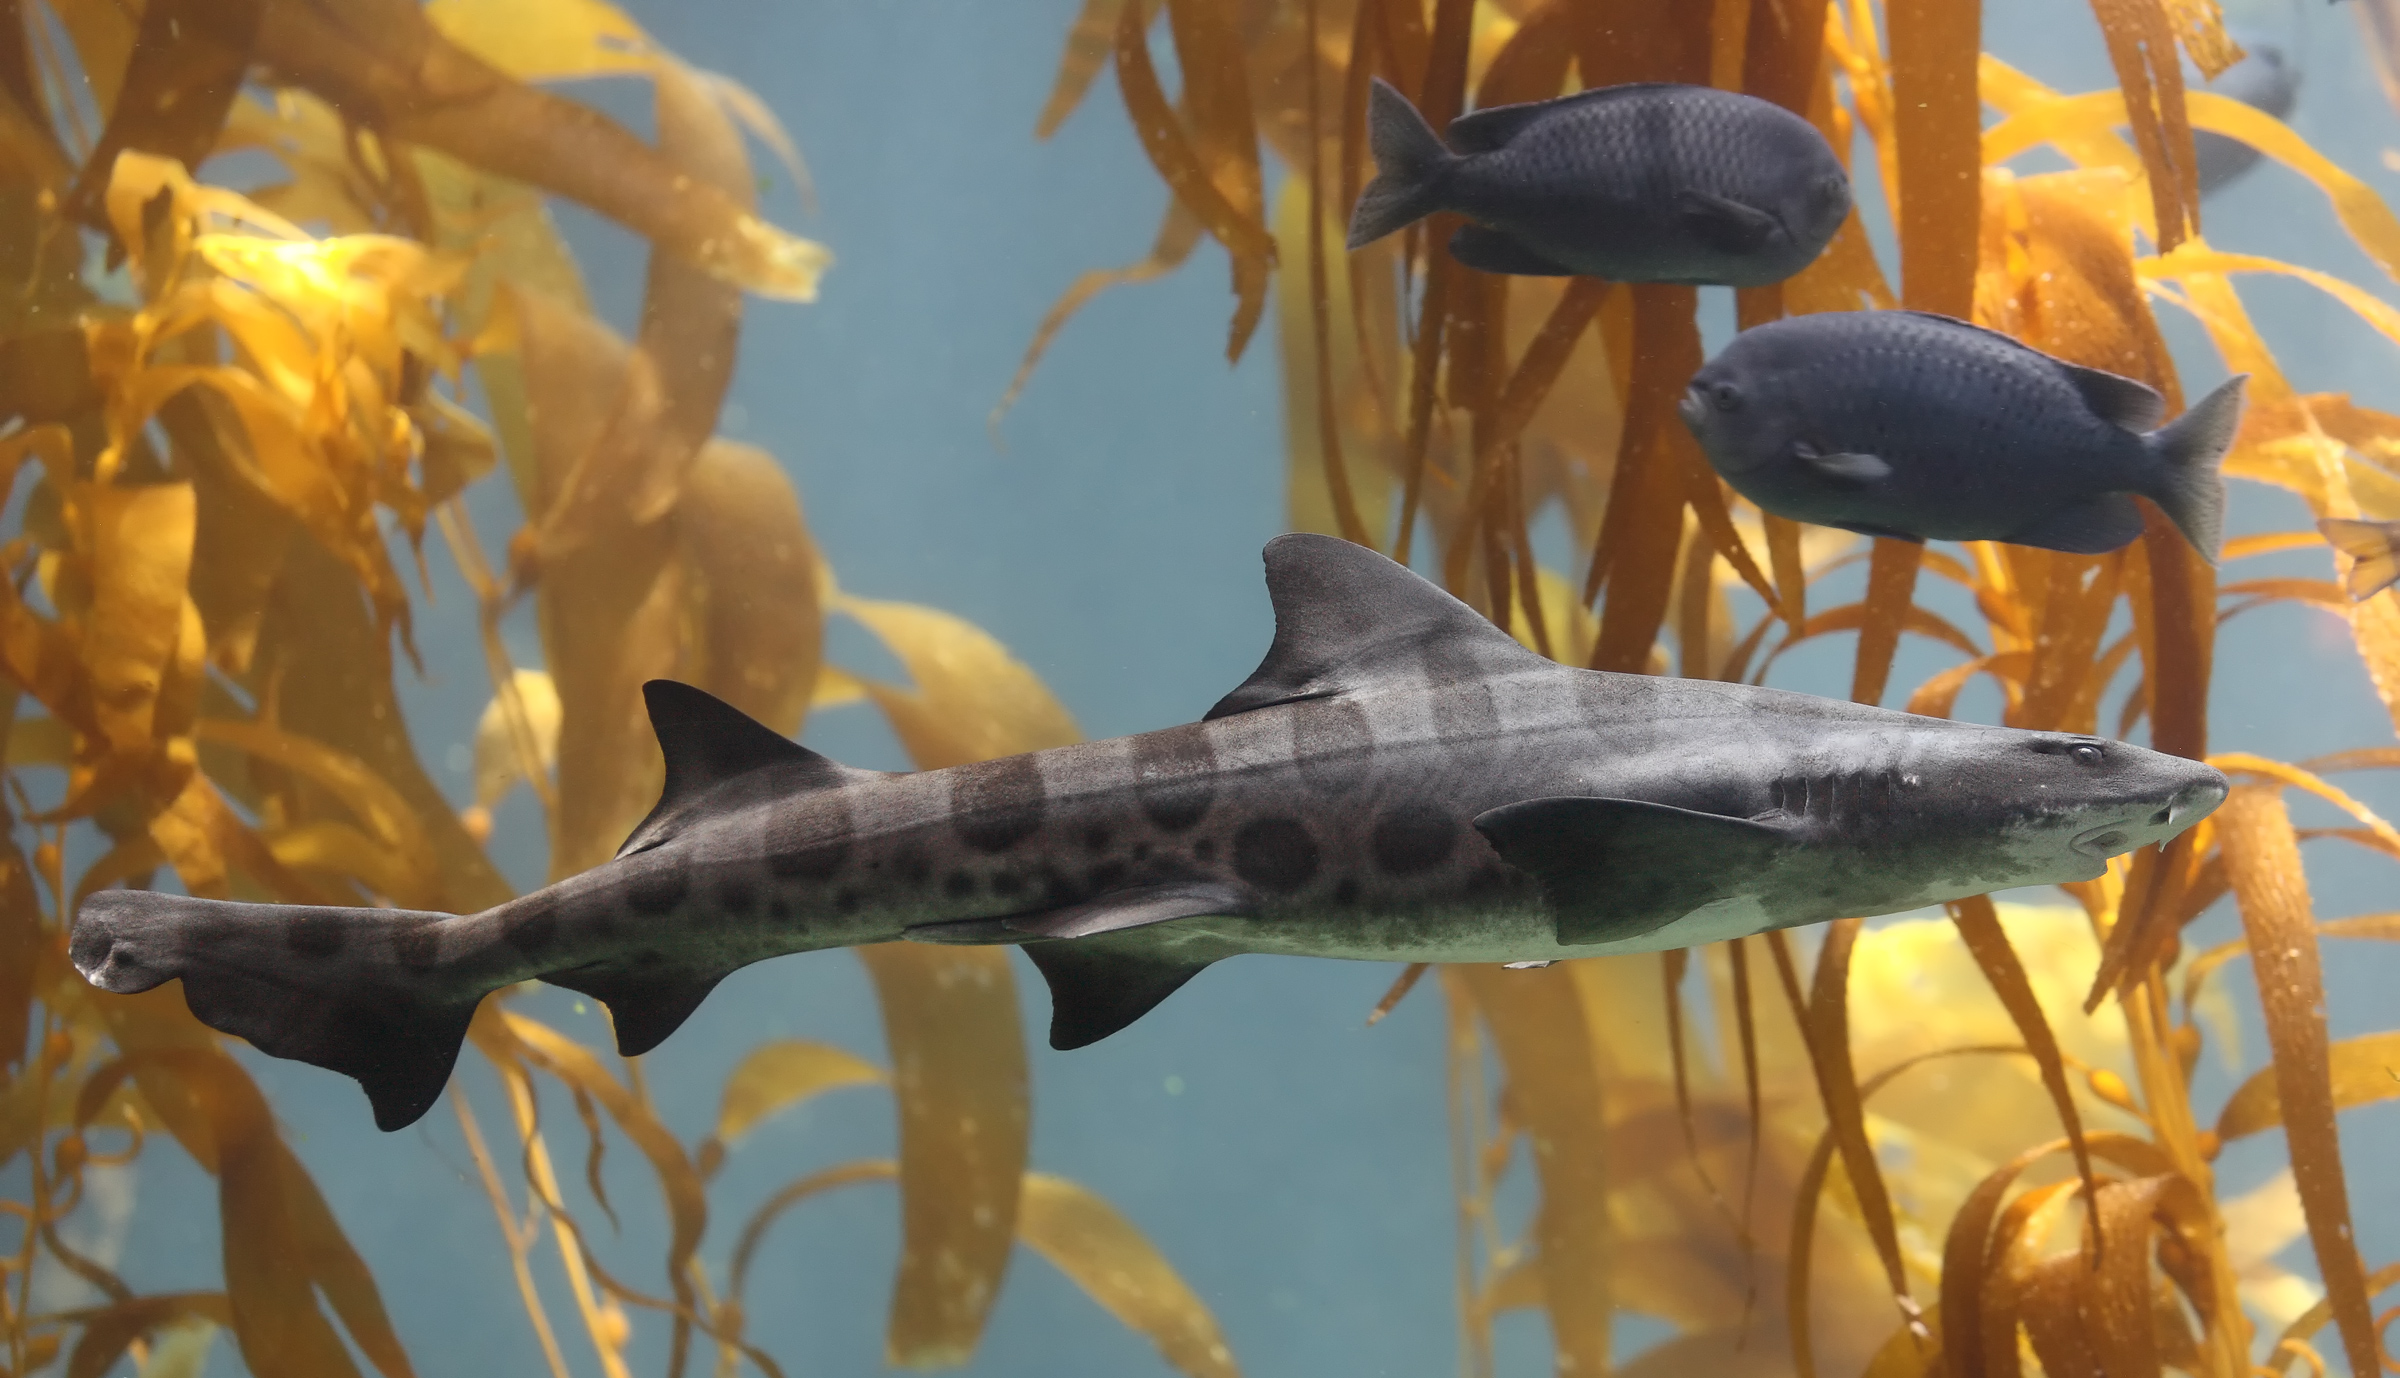 Leopard Shark in kelp